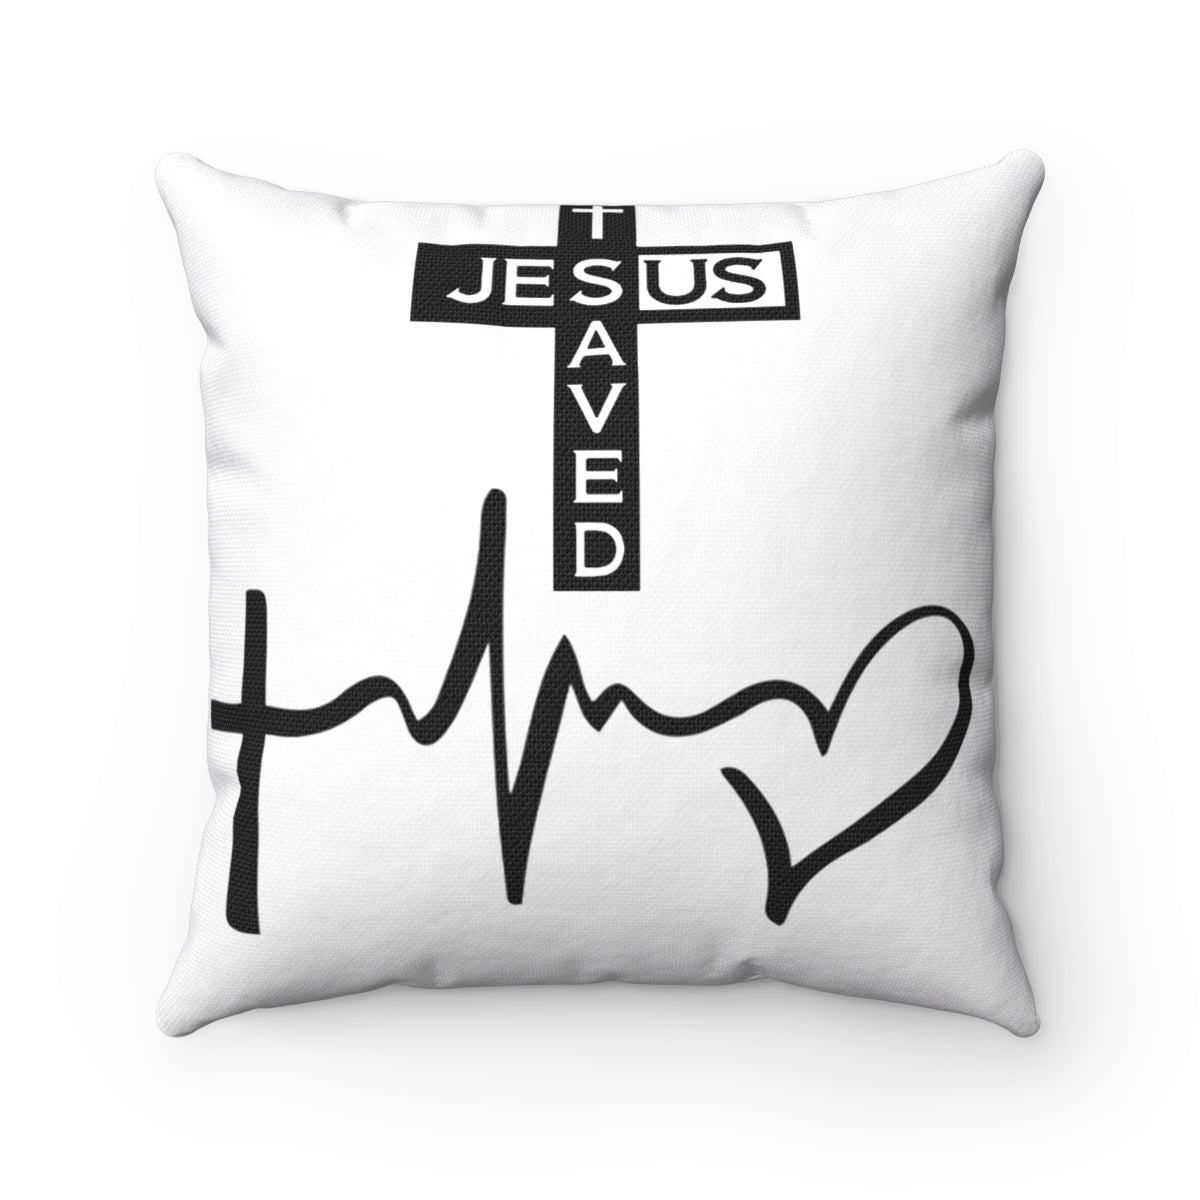 Our Jesus Saved Christian Pillow